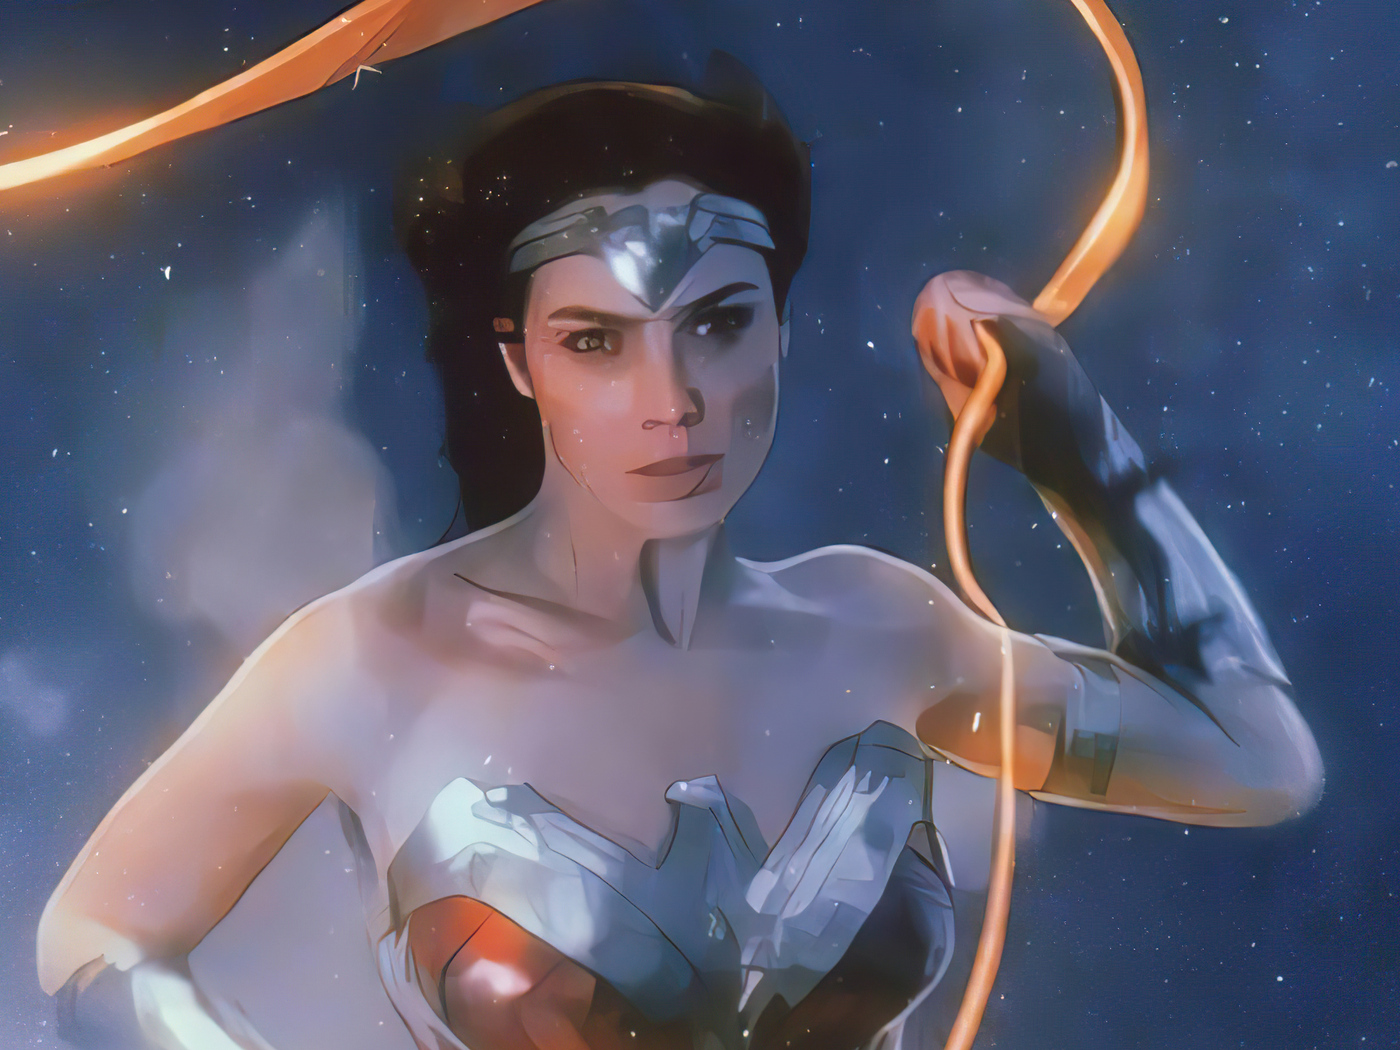 wonder-woman-1984-movie-art-w8.jpg